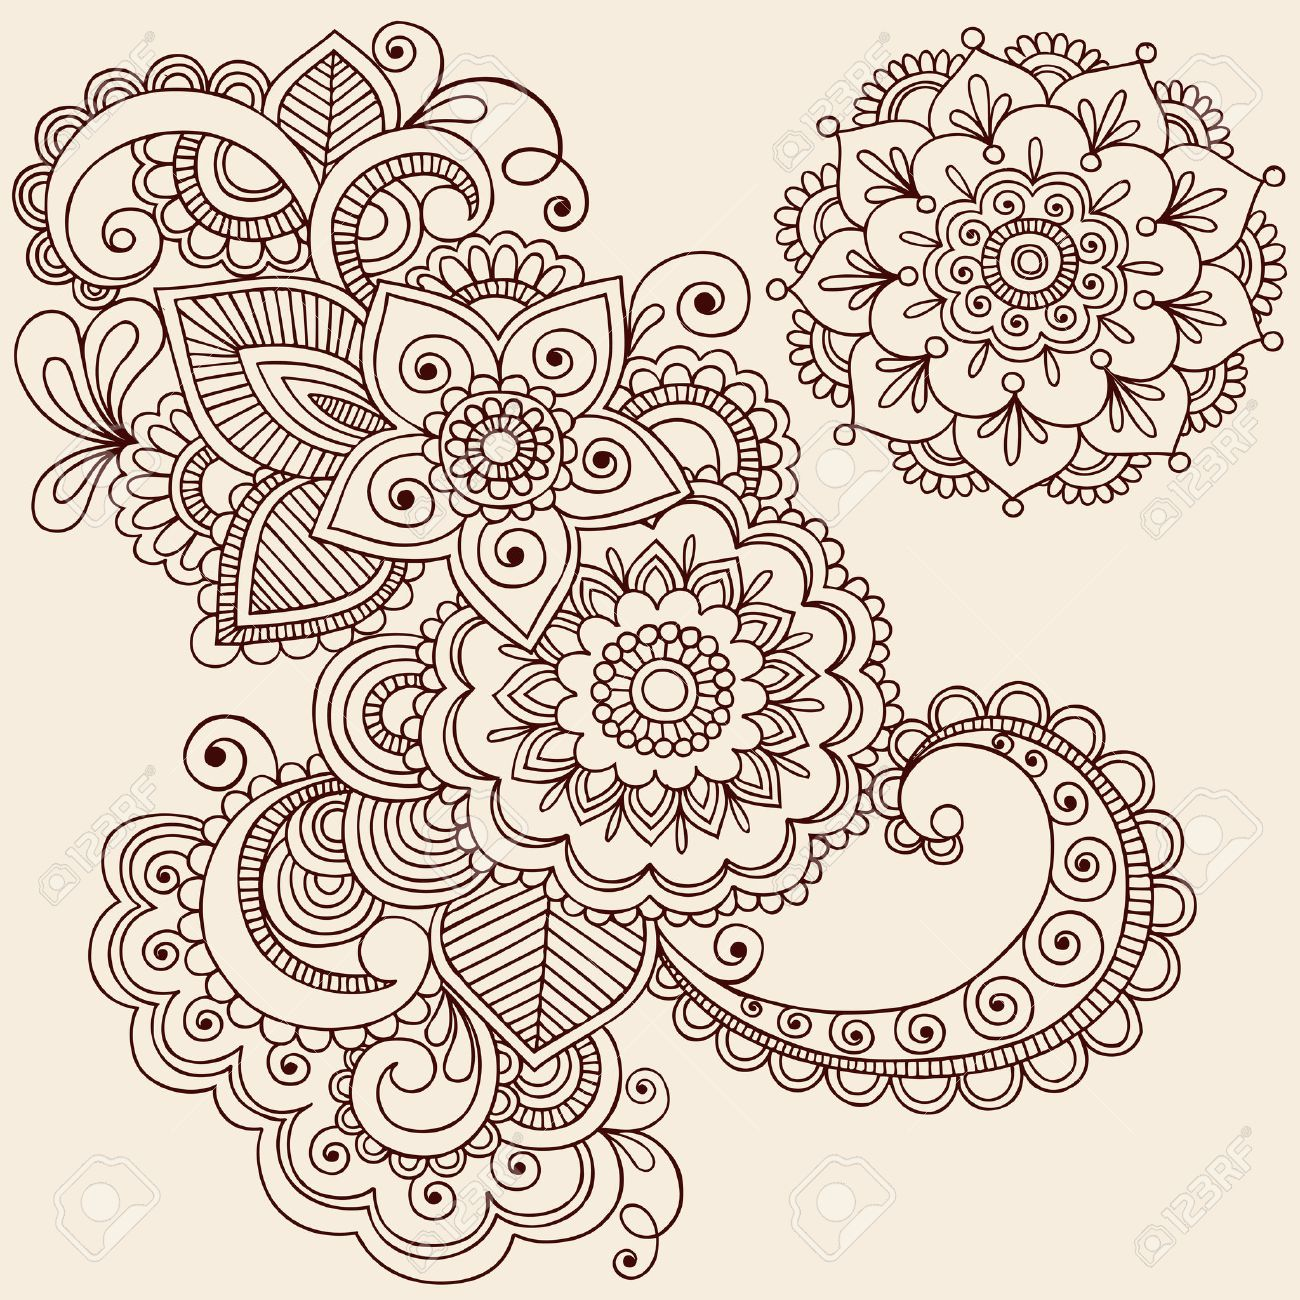 Hand-Drawn Intricate Abstract Flowers and Mandala Mehndi Henna Tattoo Paisley Doodle - Illustration Stock Vector - 6807572